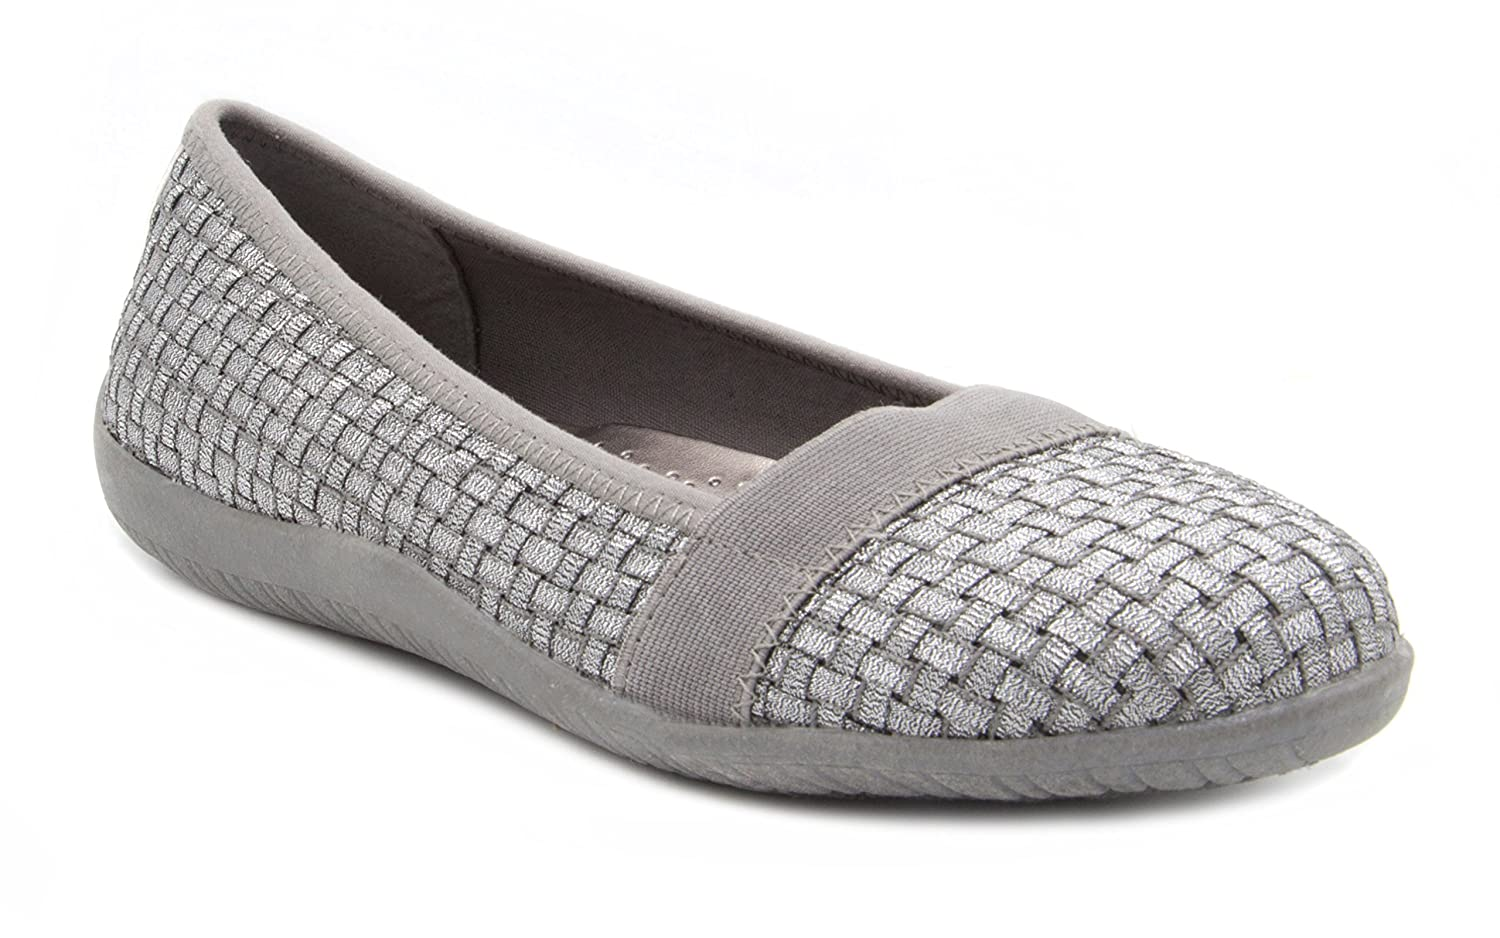 London Fog Womens Aldgate Woven Stretch Casual Shoe B074WD5XWN 8.5 B(M) US|Silver